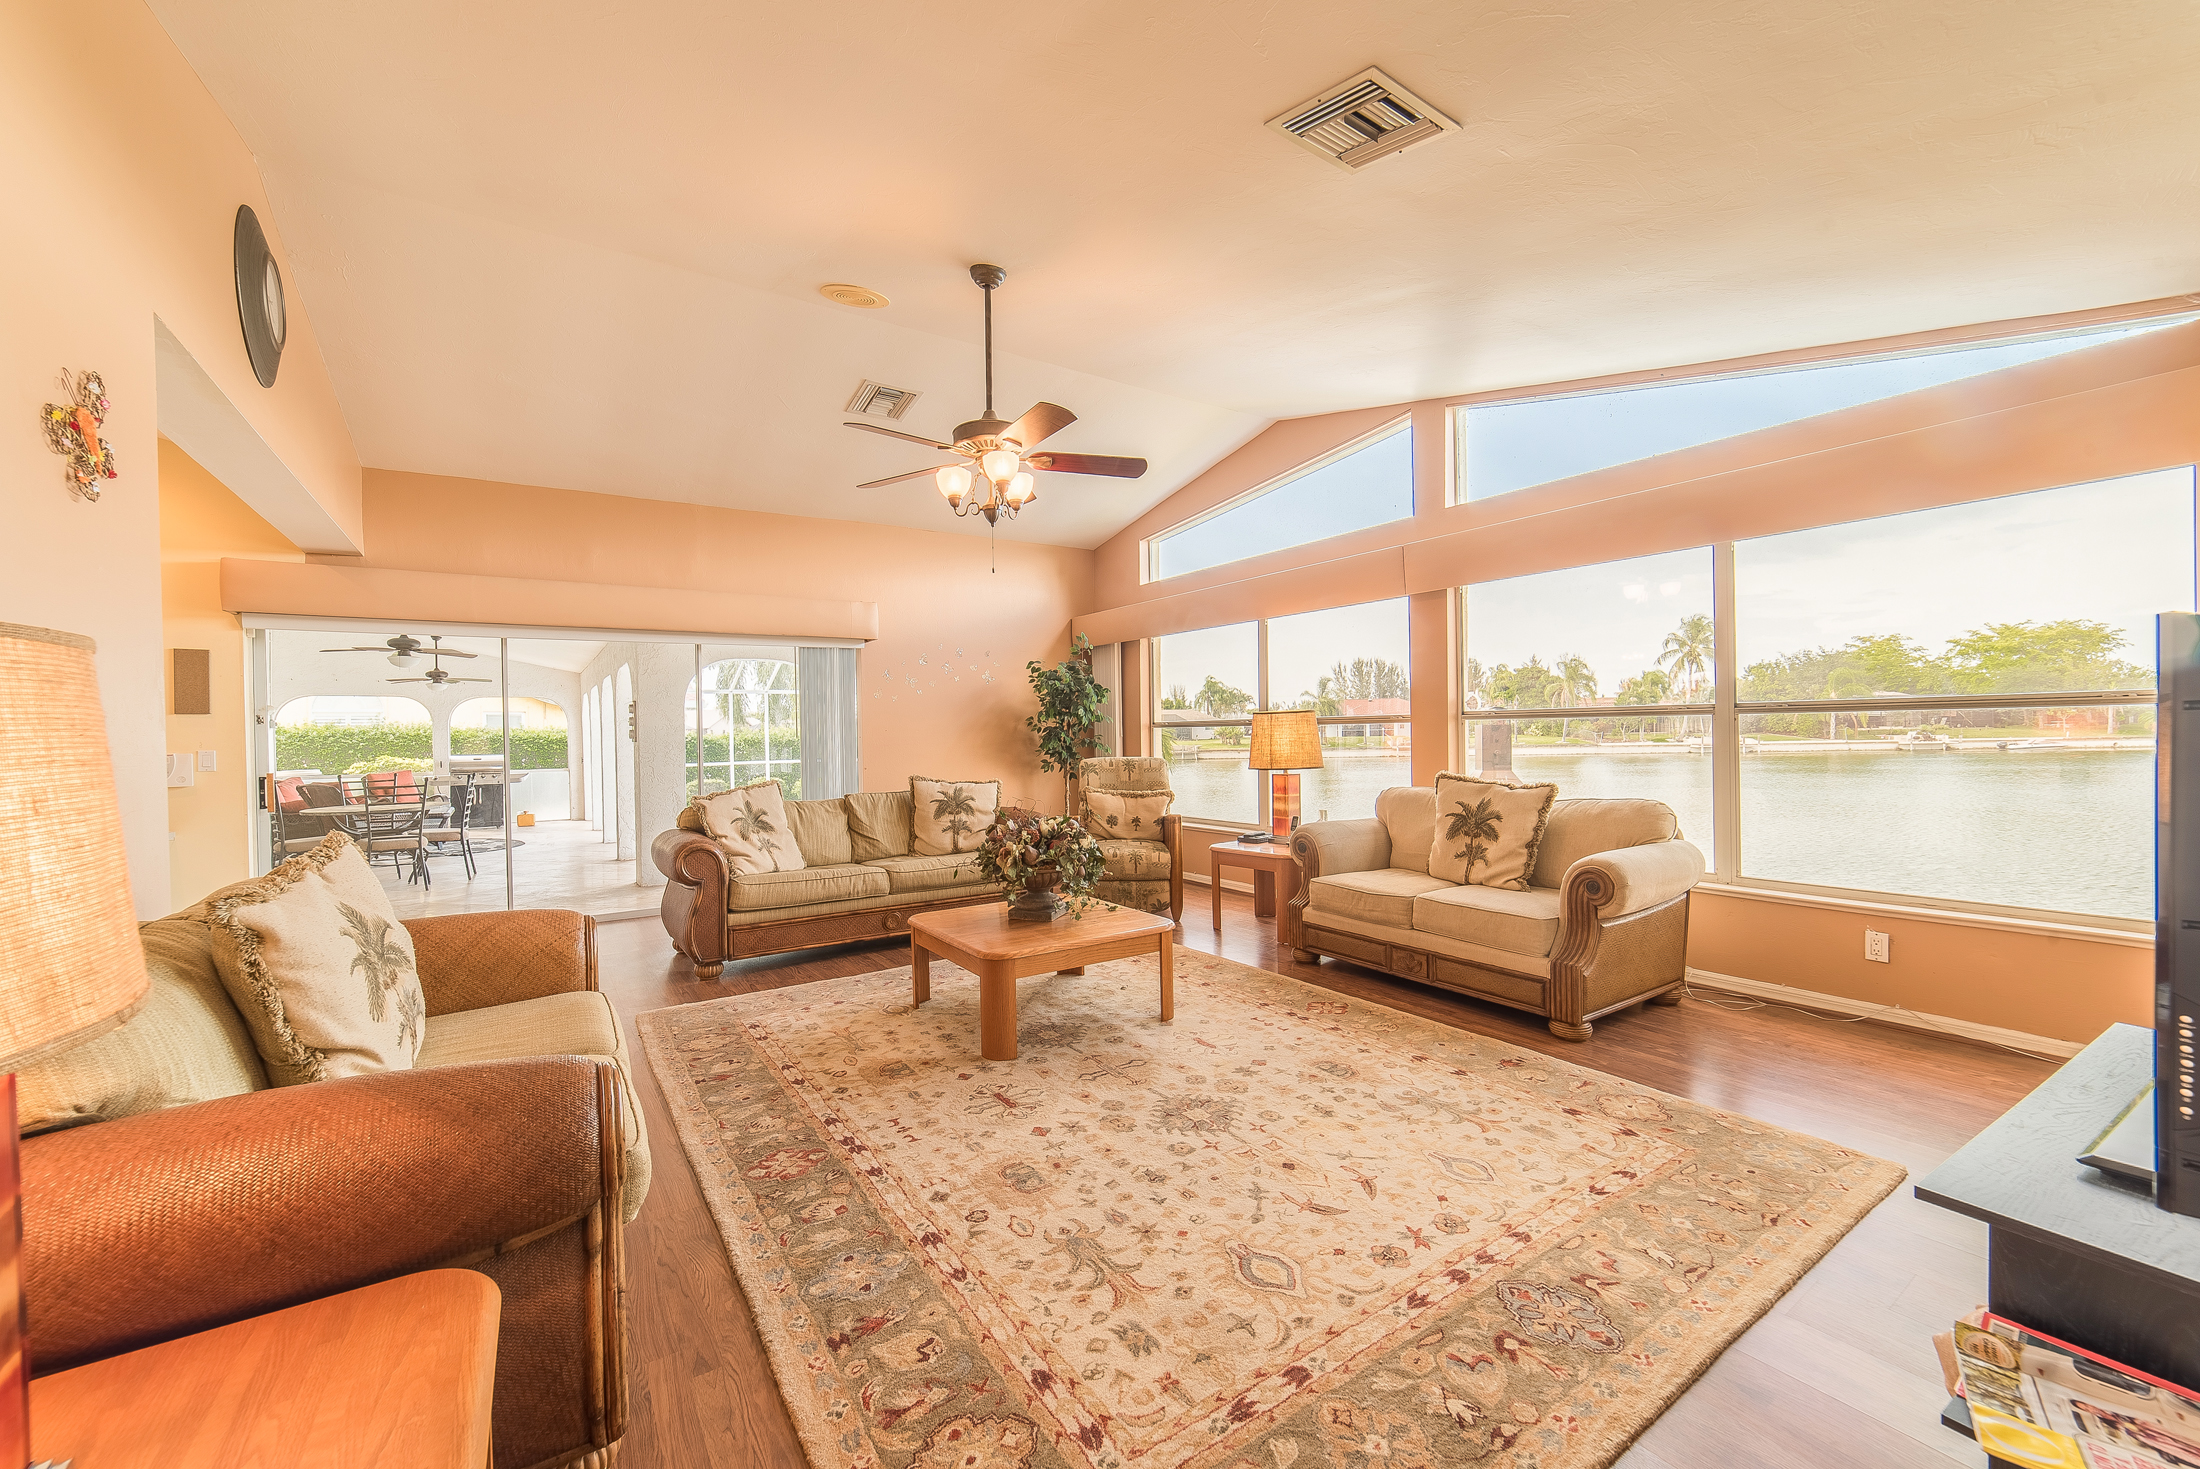 413 Aviation Parkway, Cape Coral FL 33990 (11).jpg